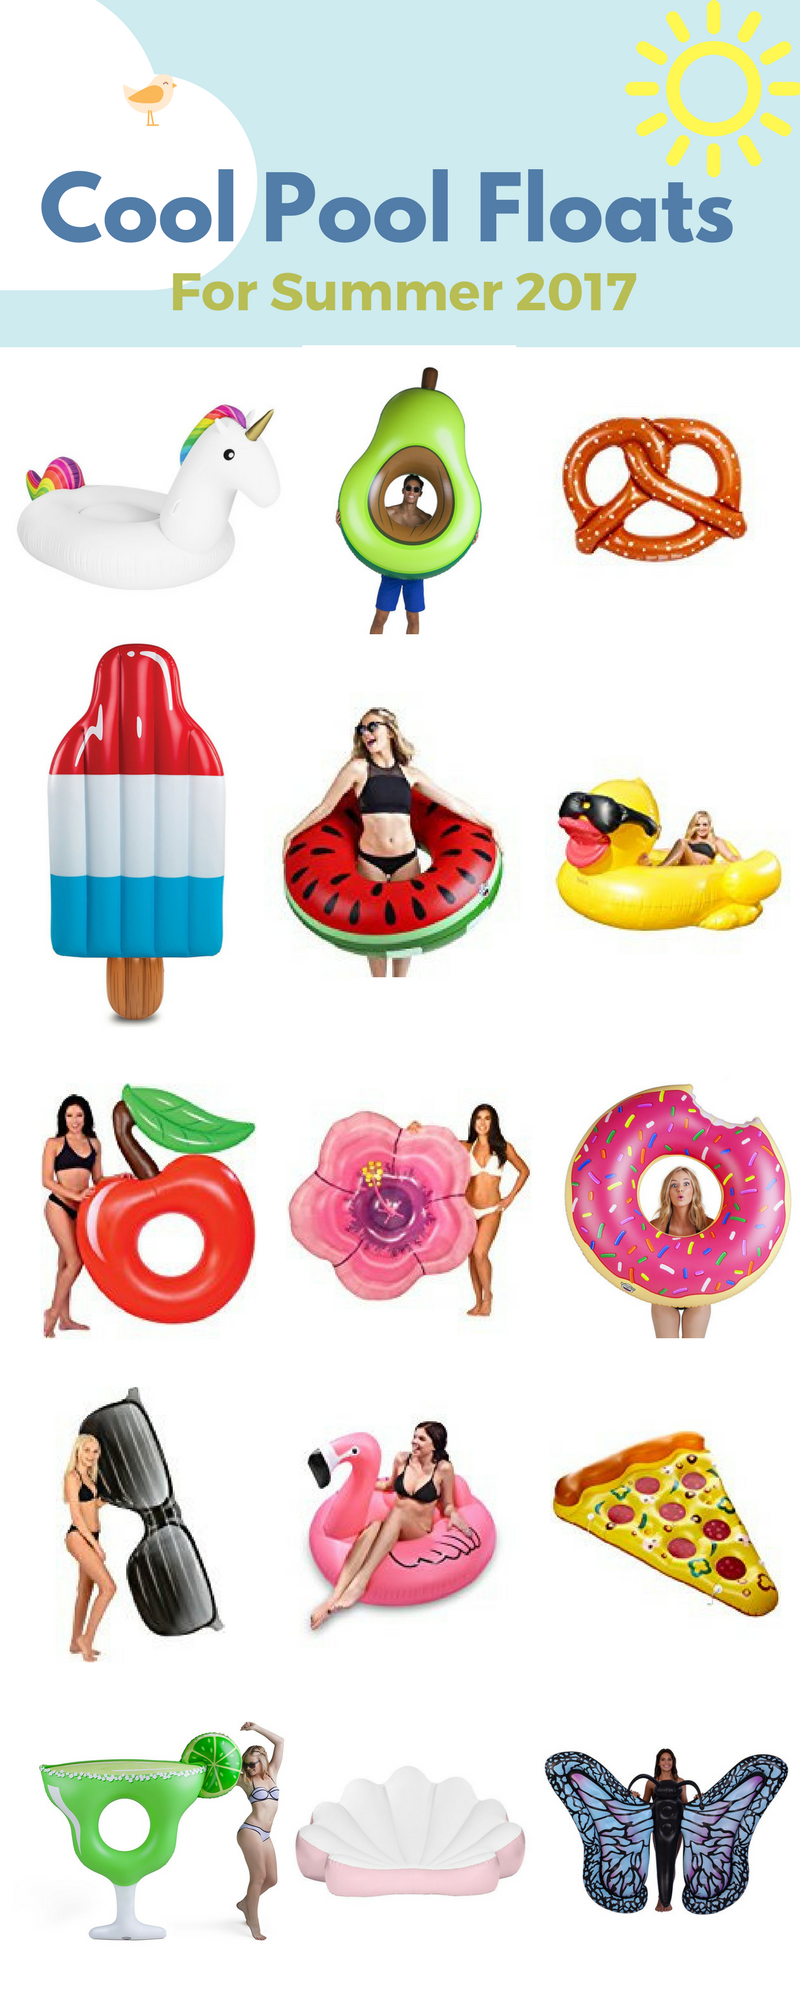 Cool Pool Floats For Summer 2017 Reviews And Buyers